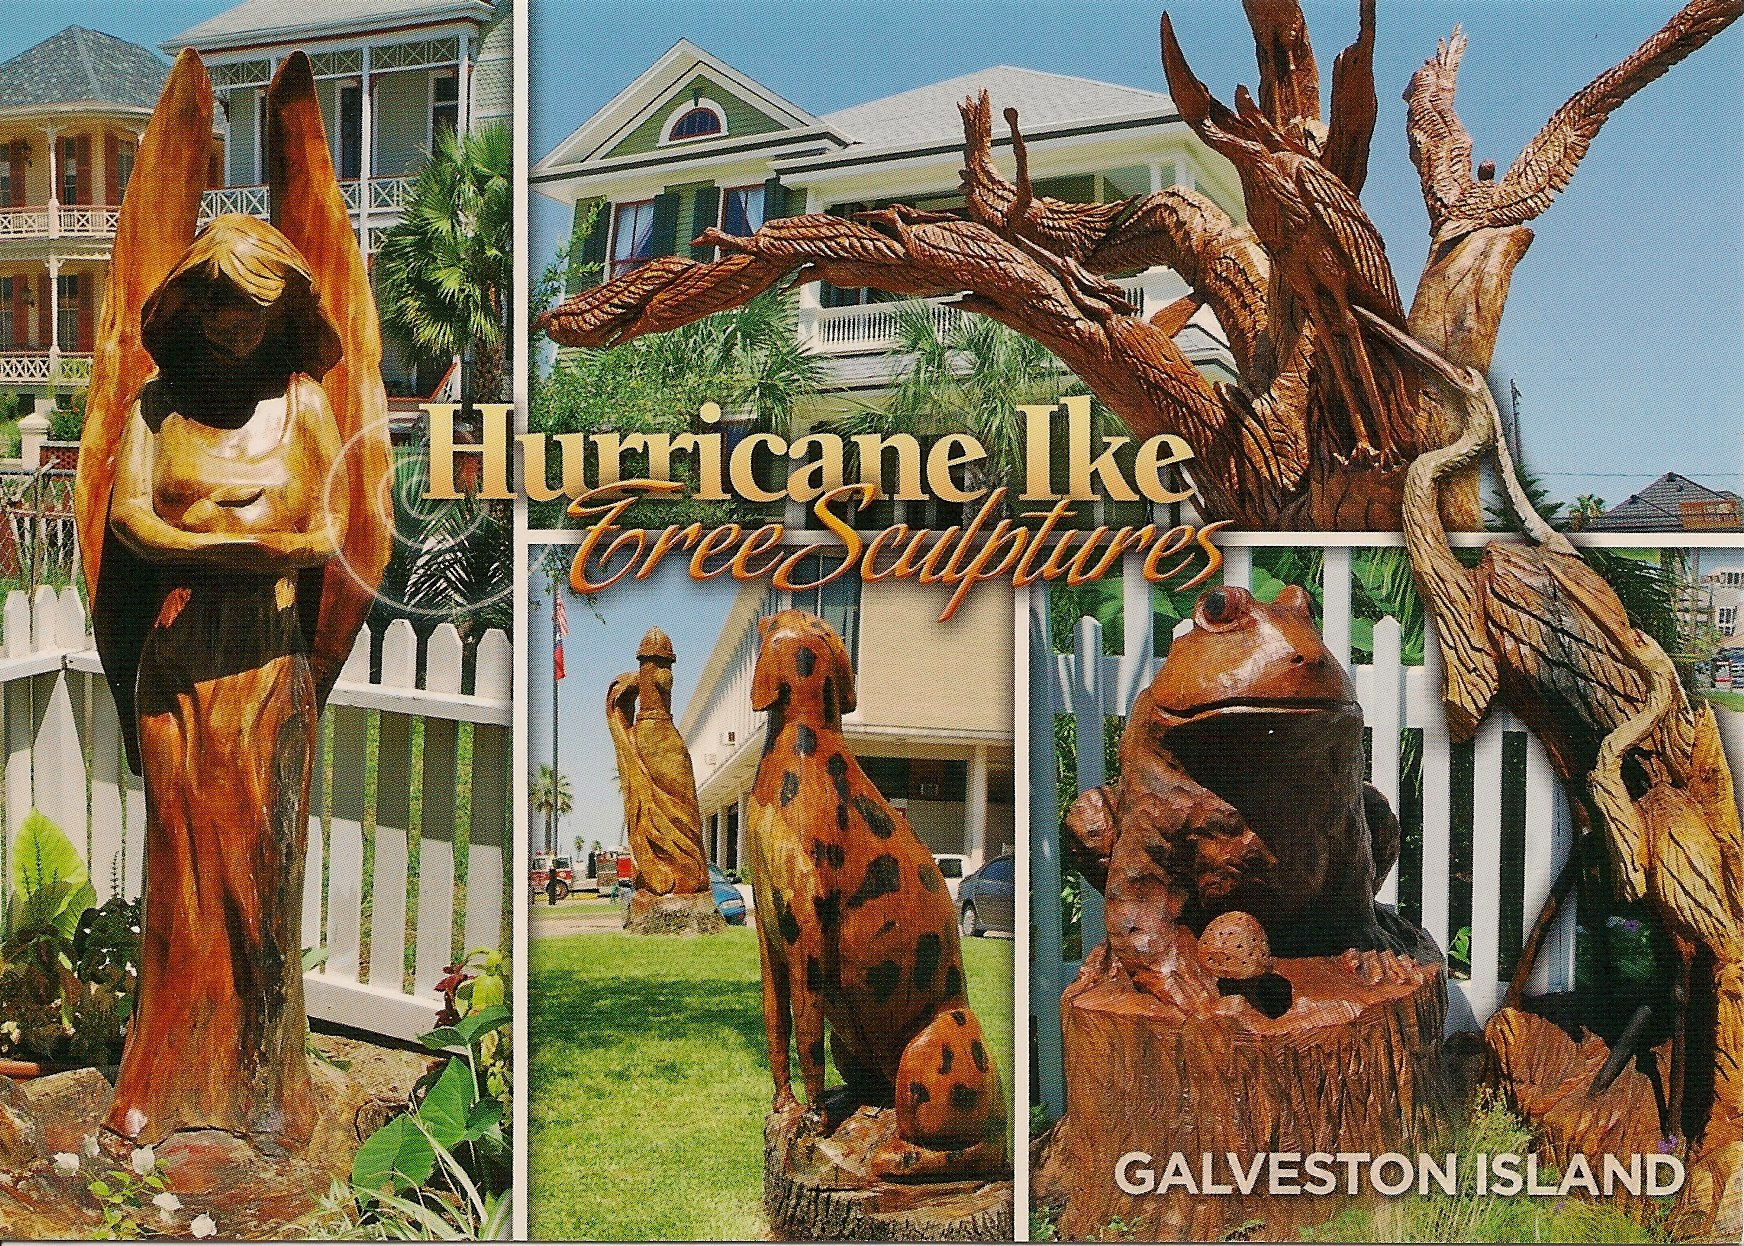 Hurricane Ike Tree Sculptures